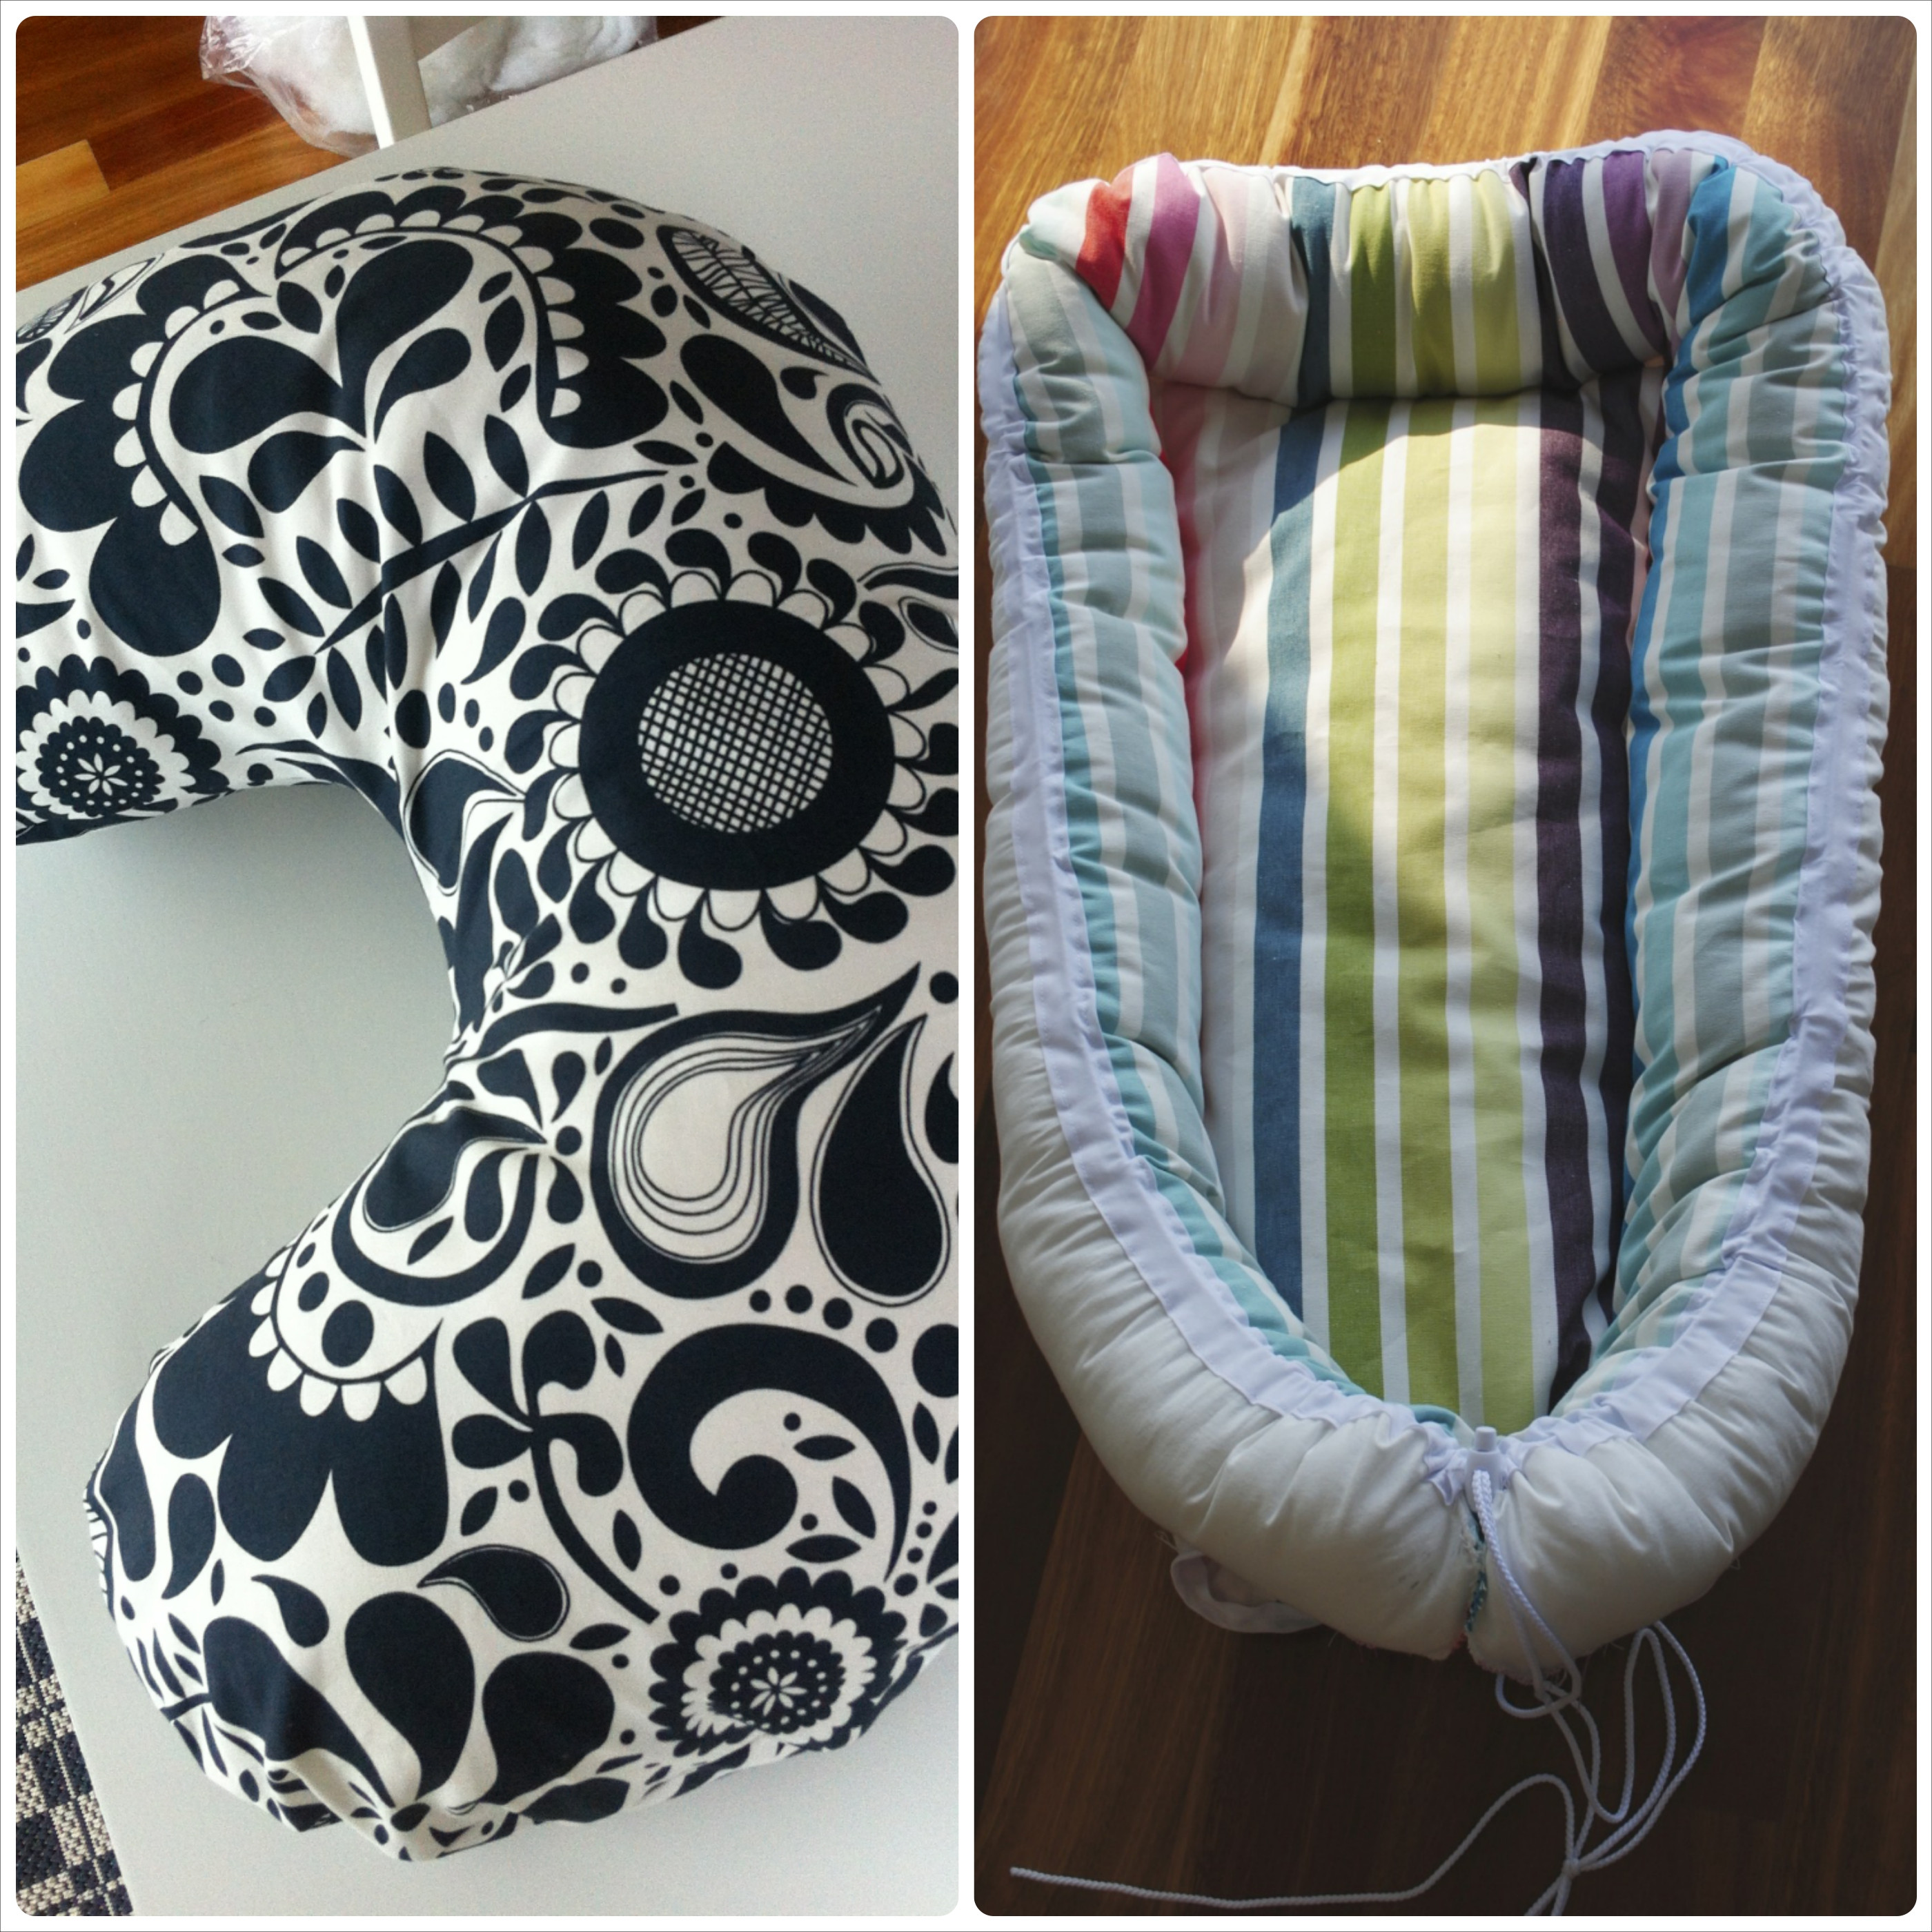 Best ideas about DIY Baby Stuff . Save or Pin baby nest DIY Now.